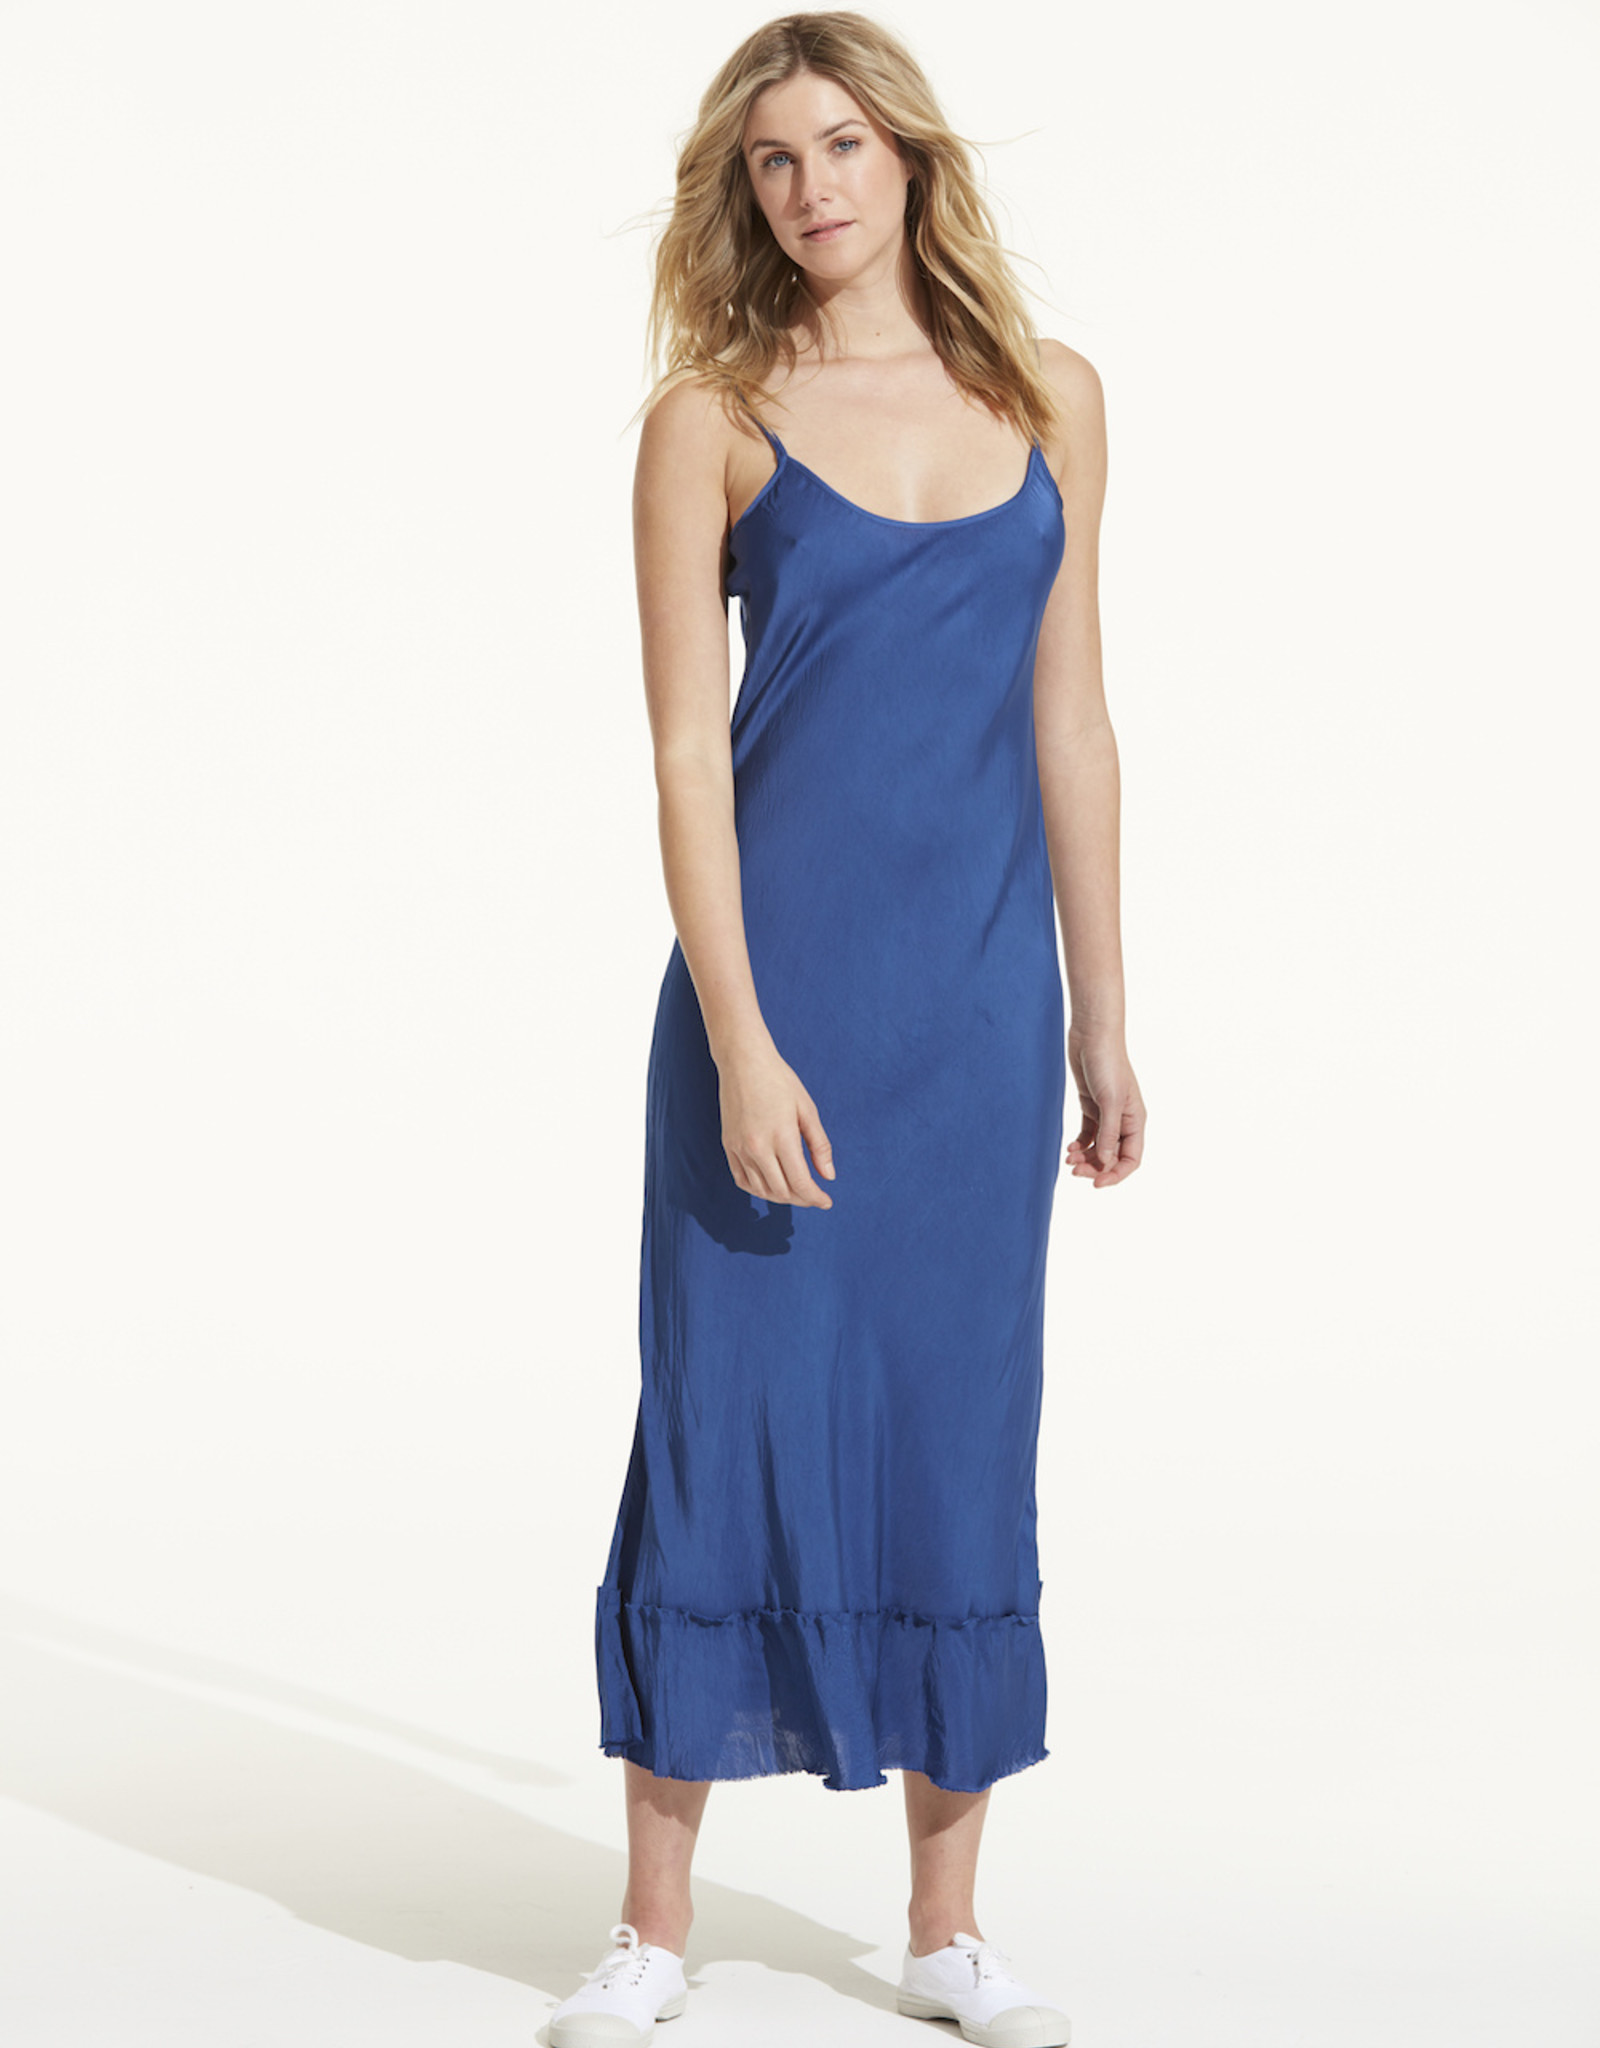 SALE - ONESEASON BLOSSOM SLIP ROYAL BLUE